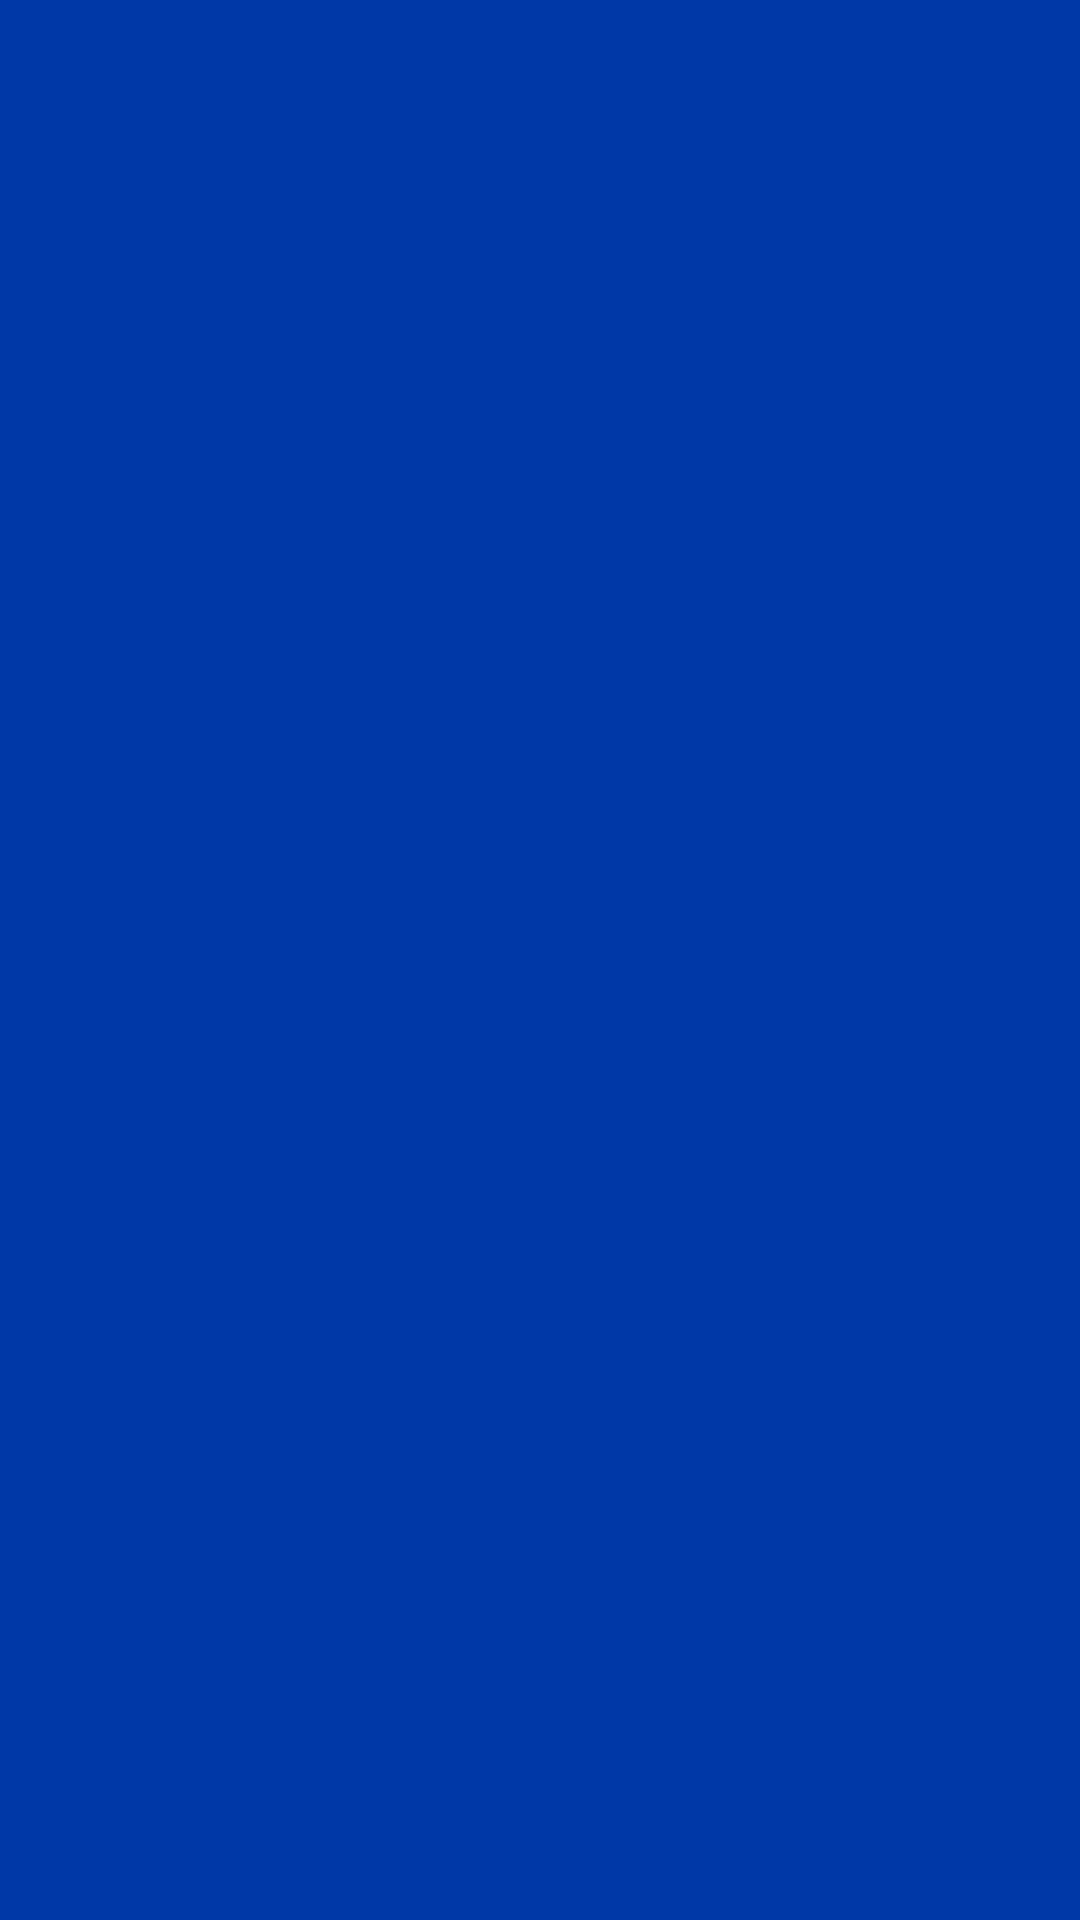 1080x1920 Royal Azure Solid Color Background